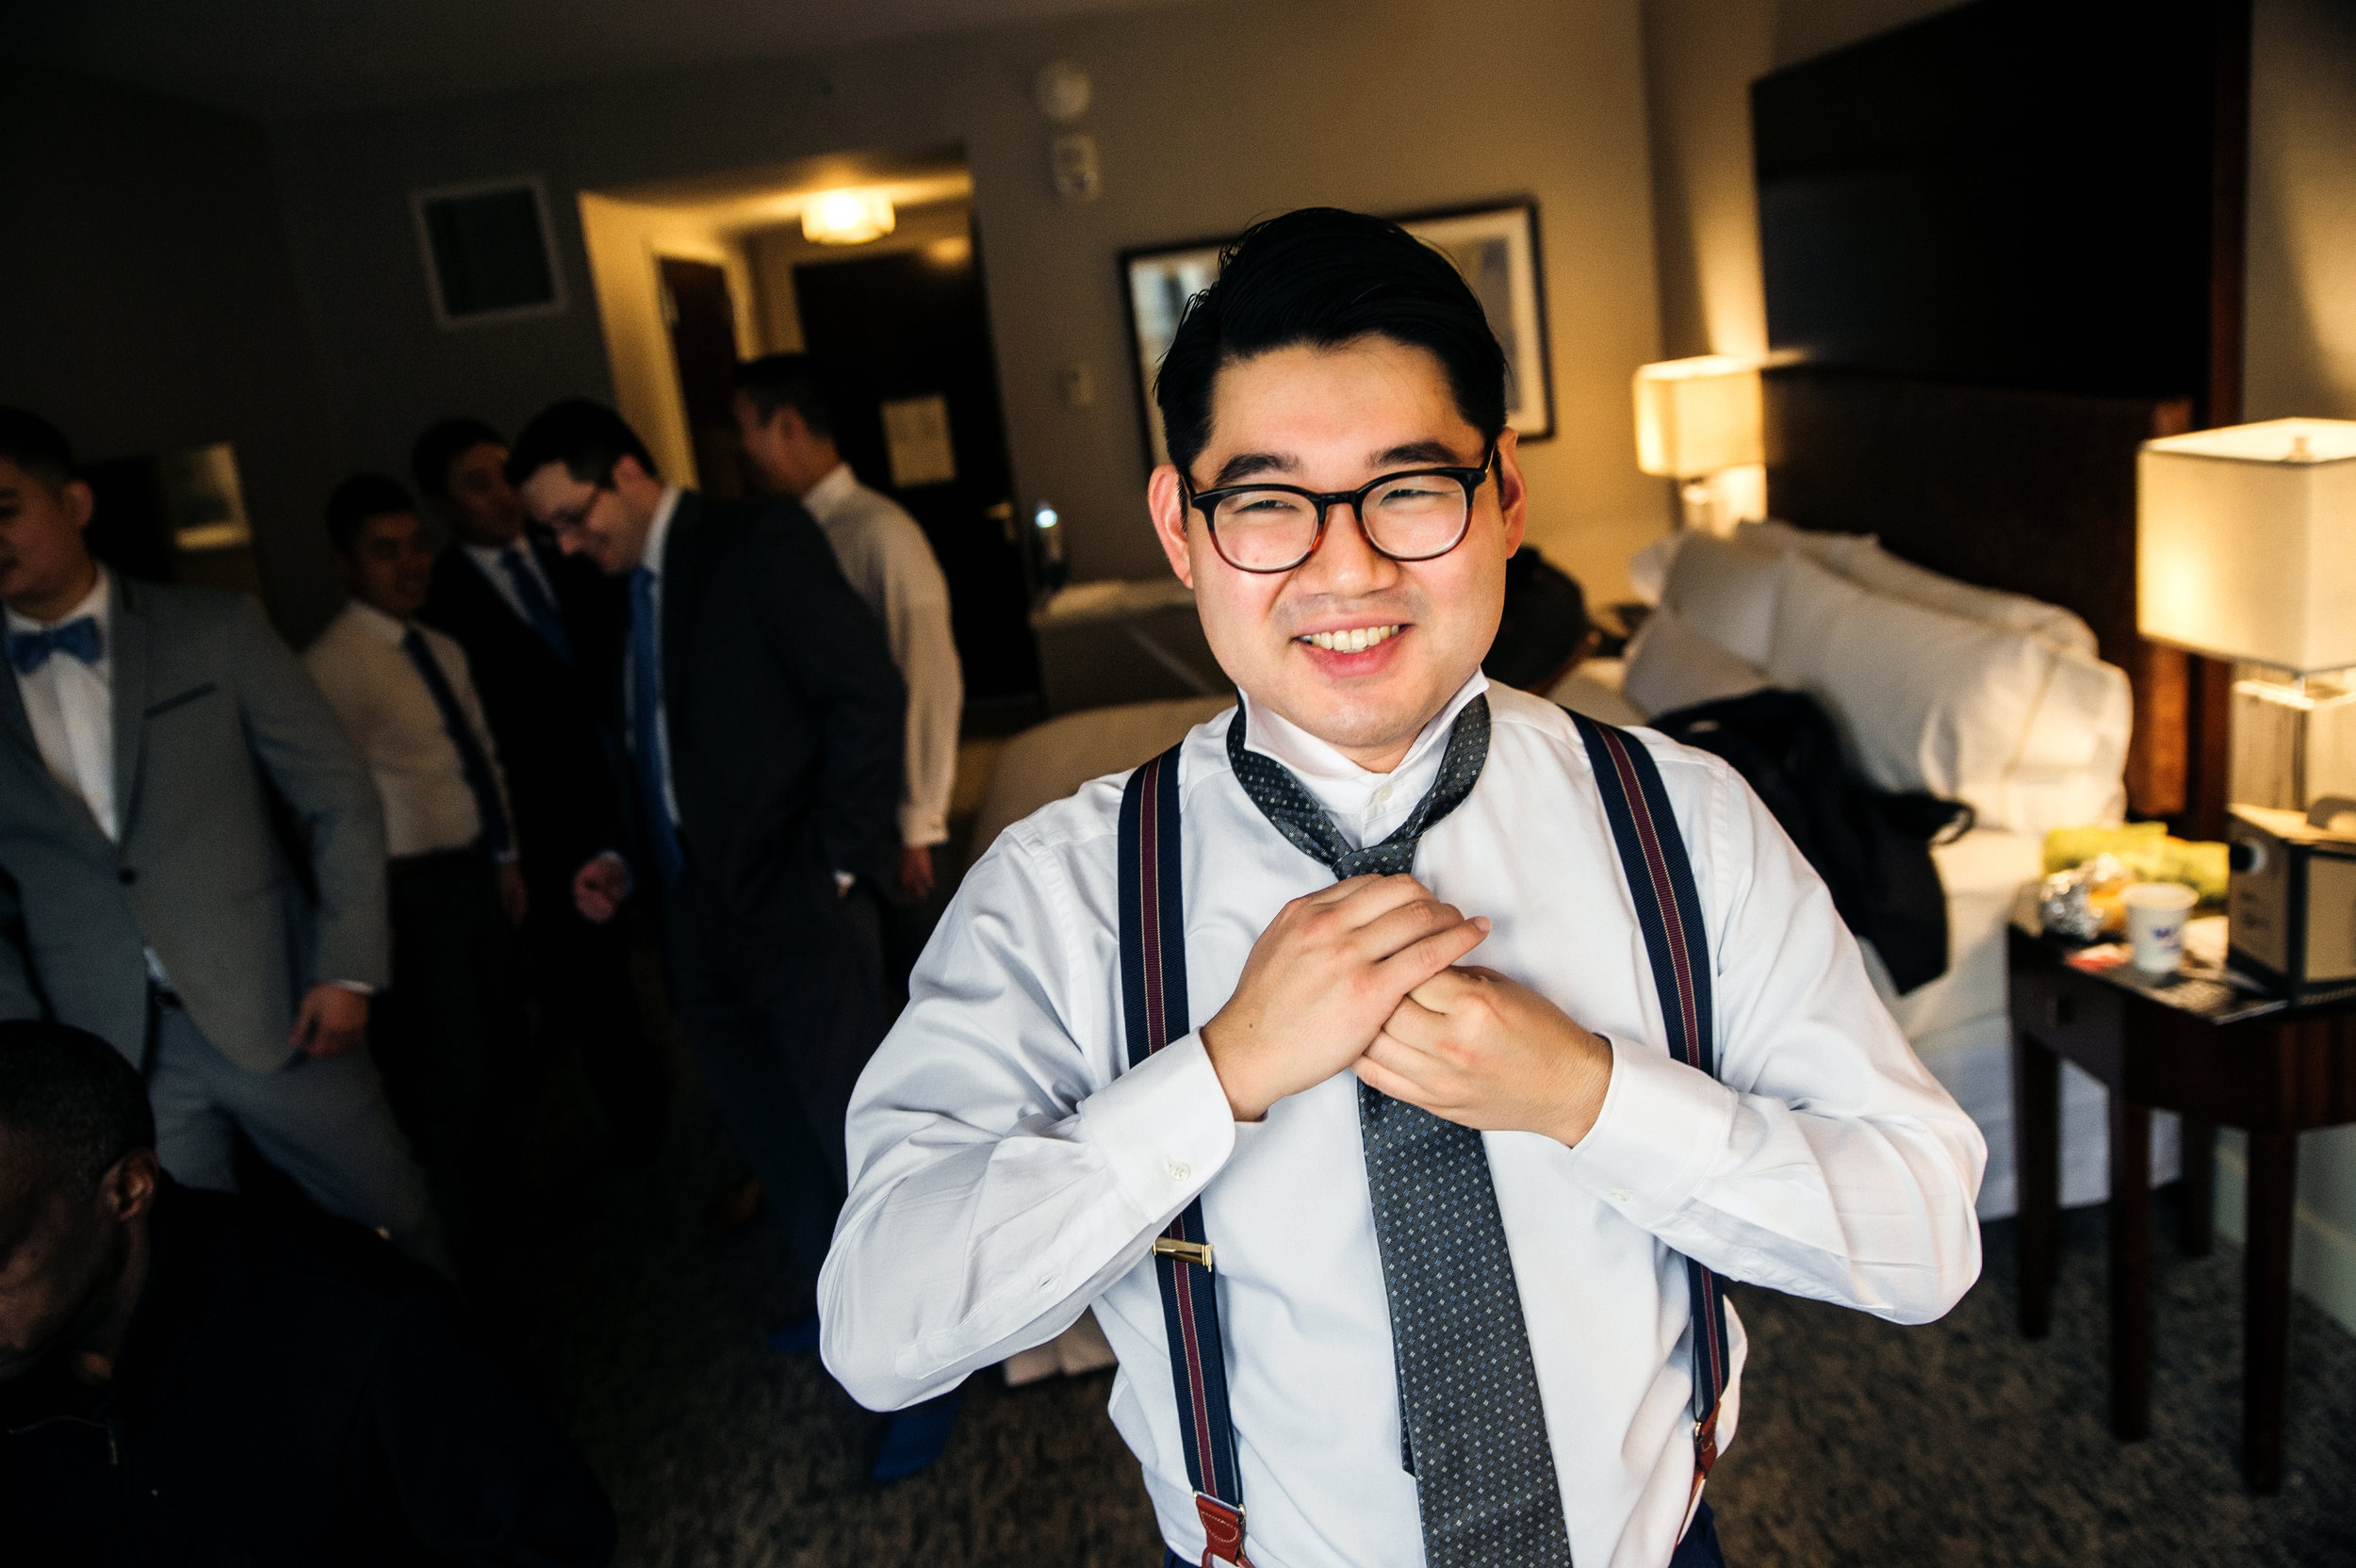 Portait of asian groom tying his 20's tie while getting ready at the Westin hotel room with groomsmen